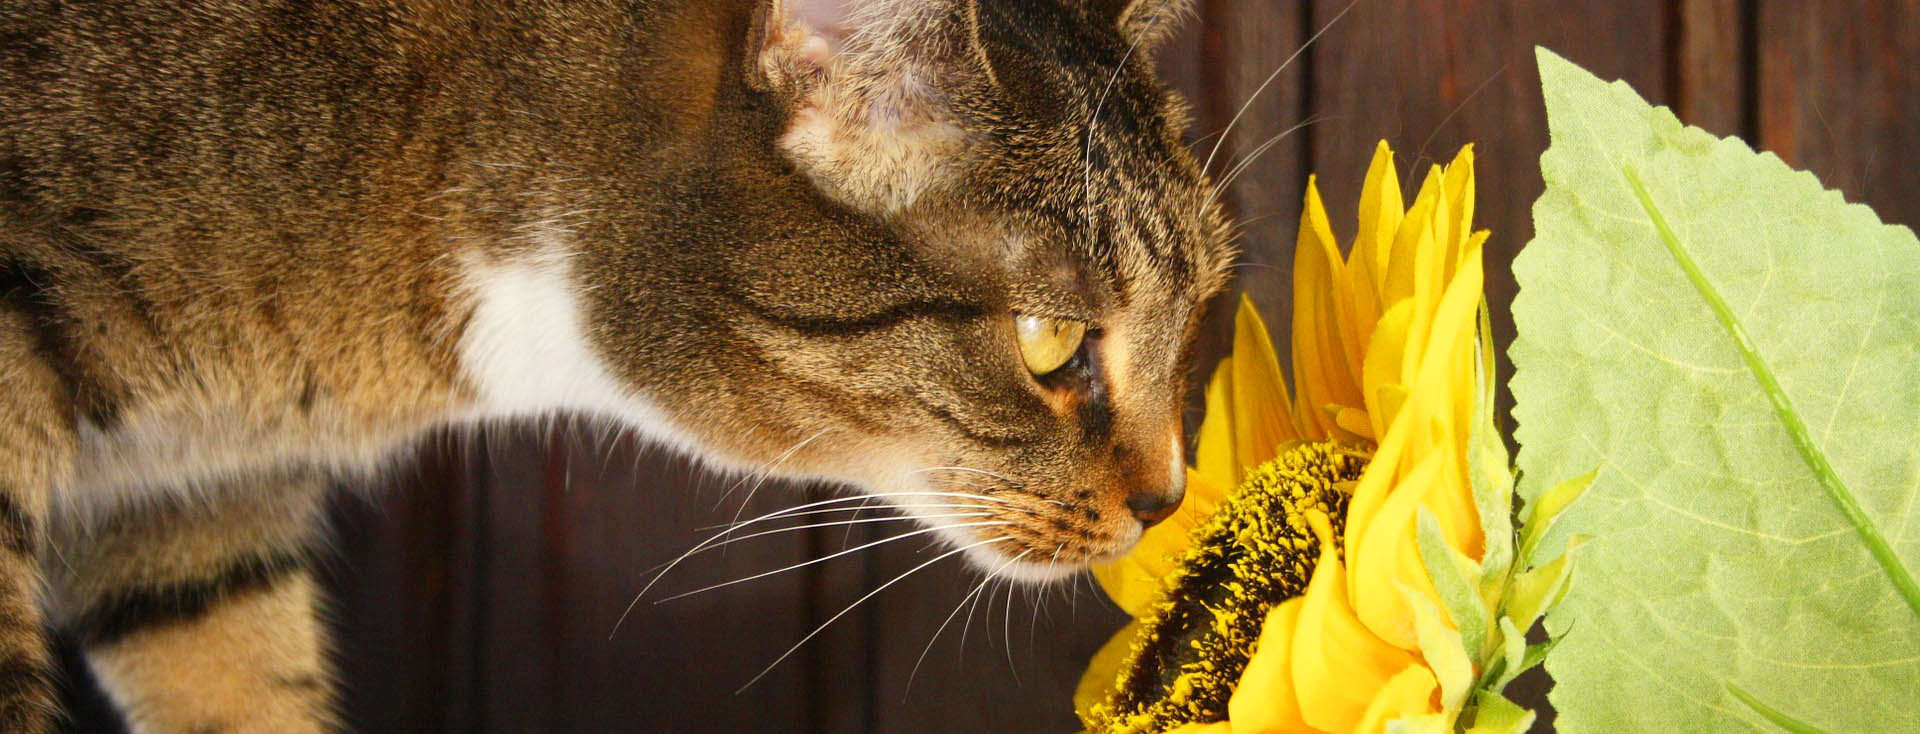 Cats & Plants: What to Avoid